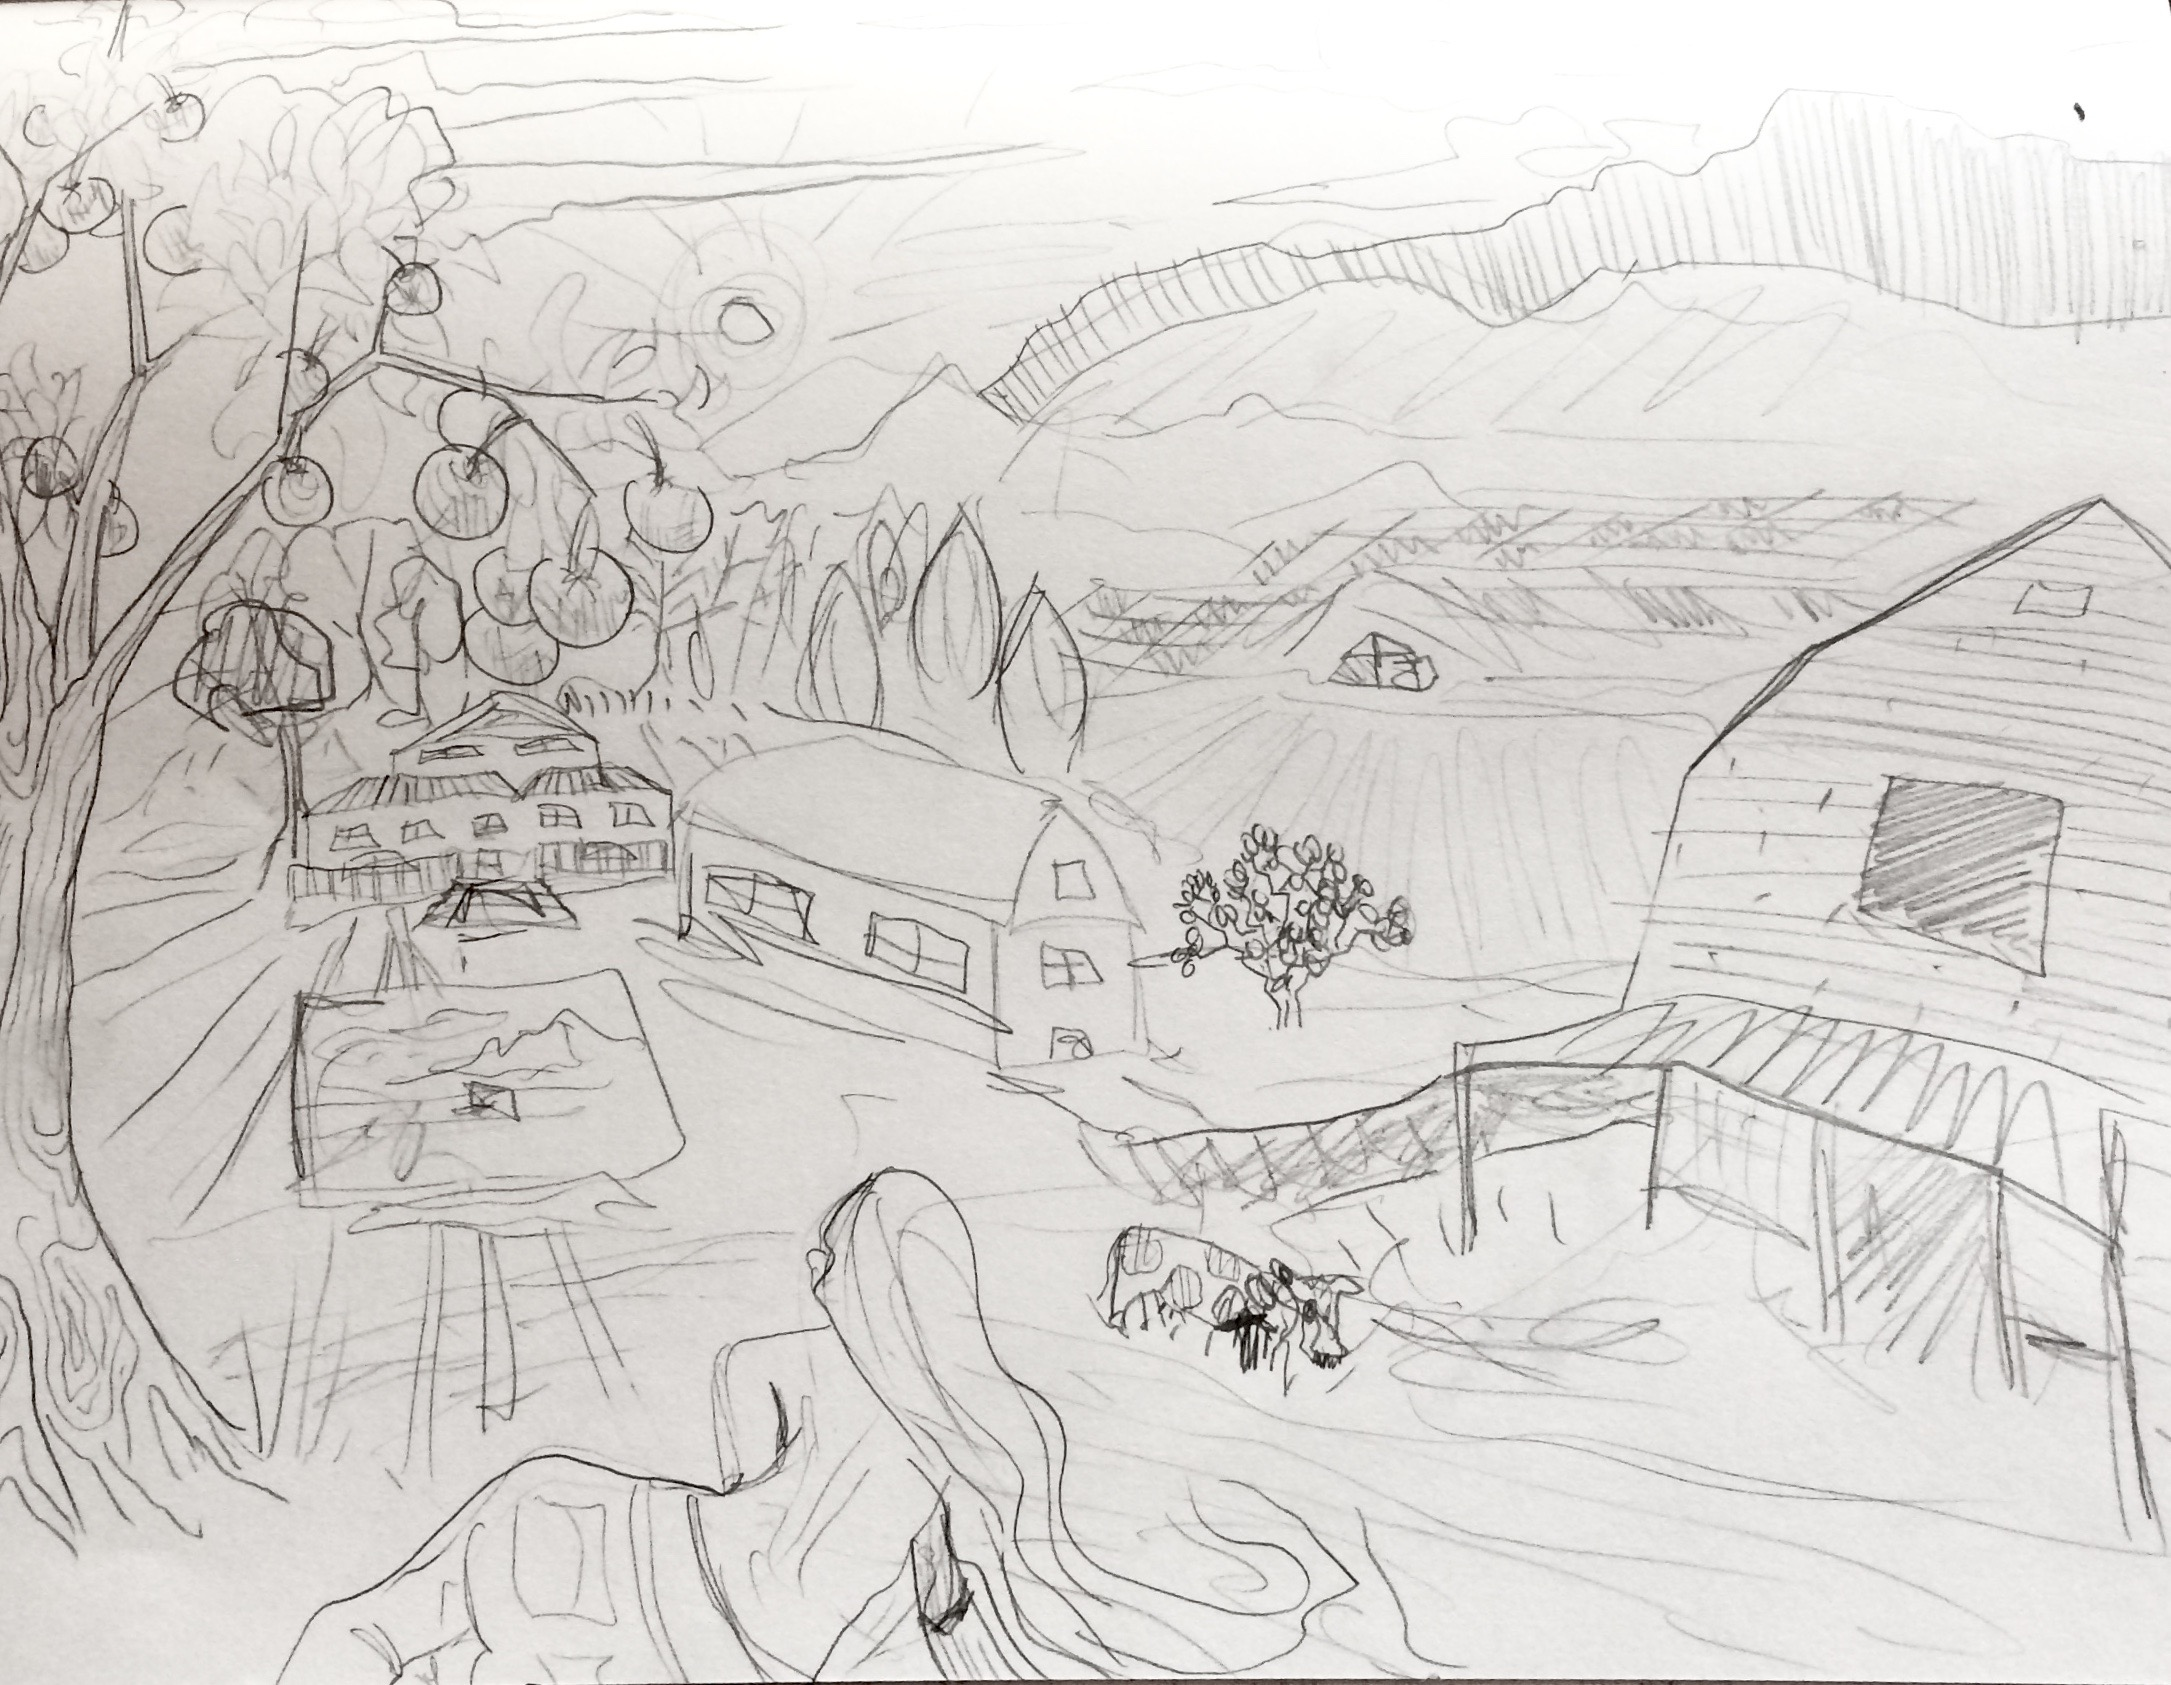 Mock-up sketch of the 'Farms in Georgia' painting, all subject to change due to donor's input and contribution. Click the image to link to the Kickstarter Project!